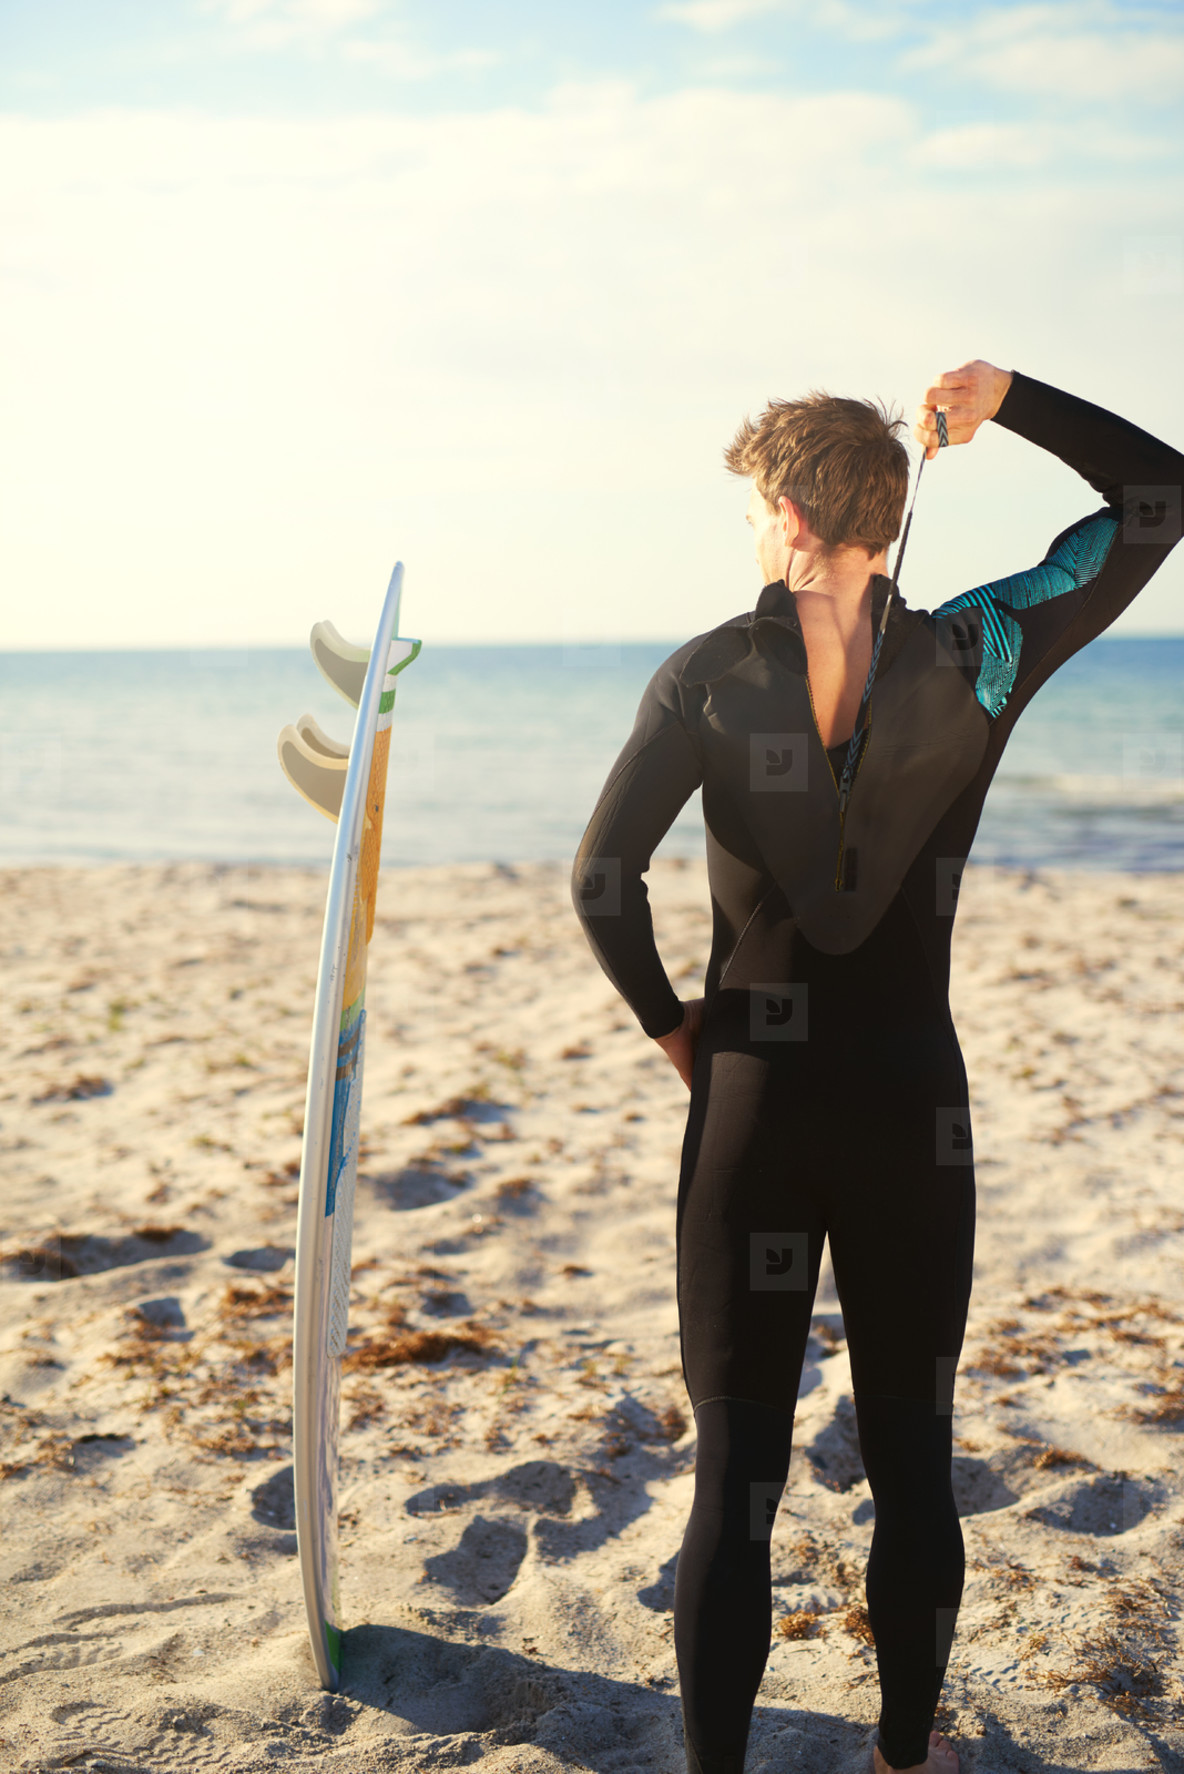 Surfer zipping up his wetsuit